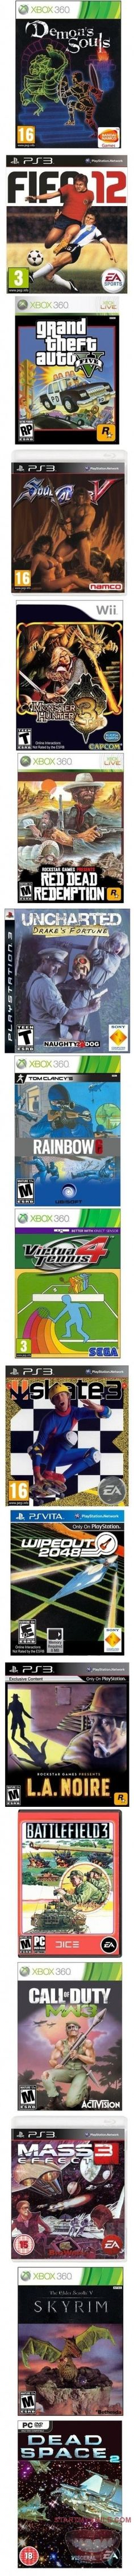 LMAO!!! Box Art from the 80s